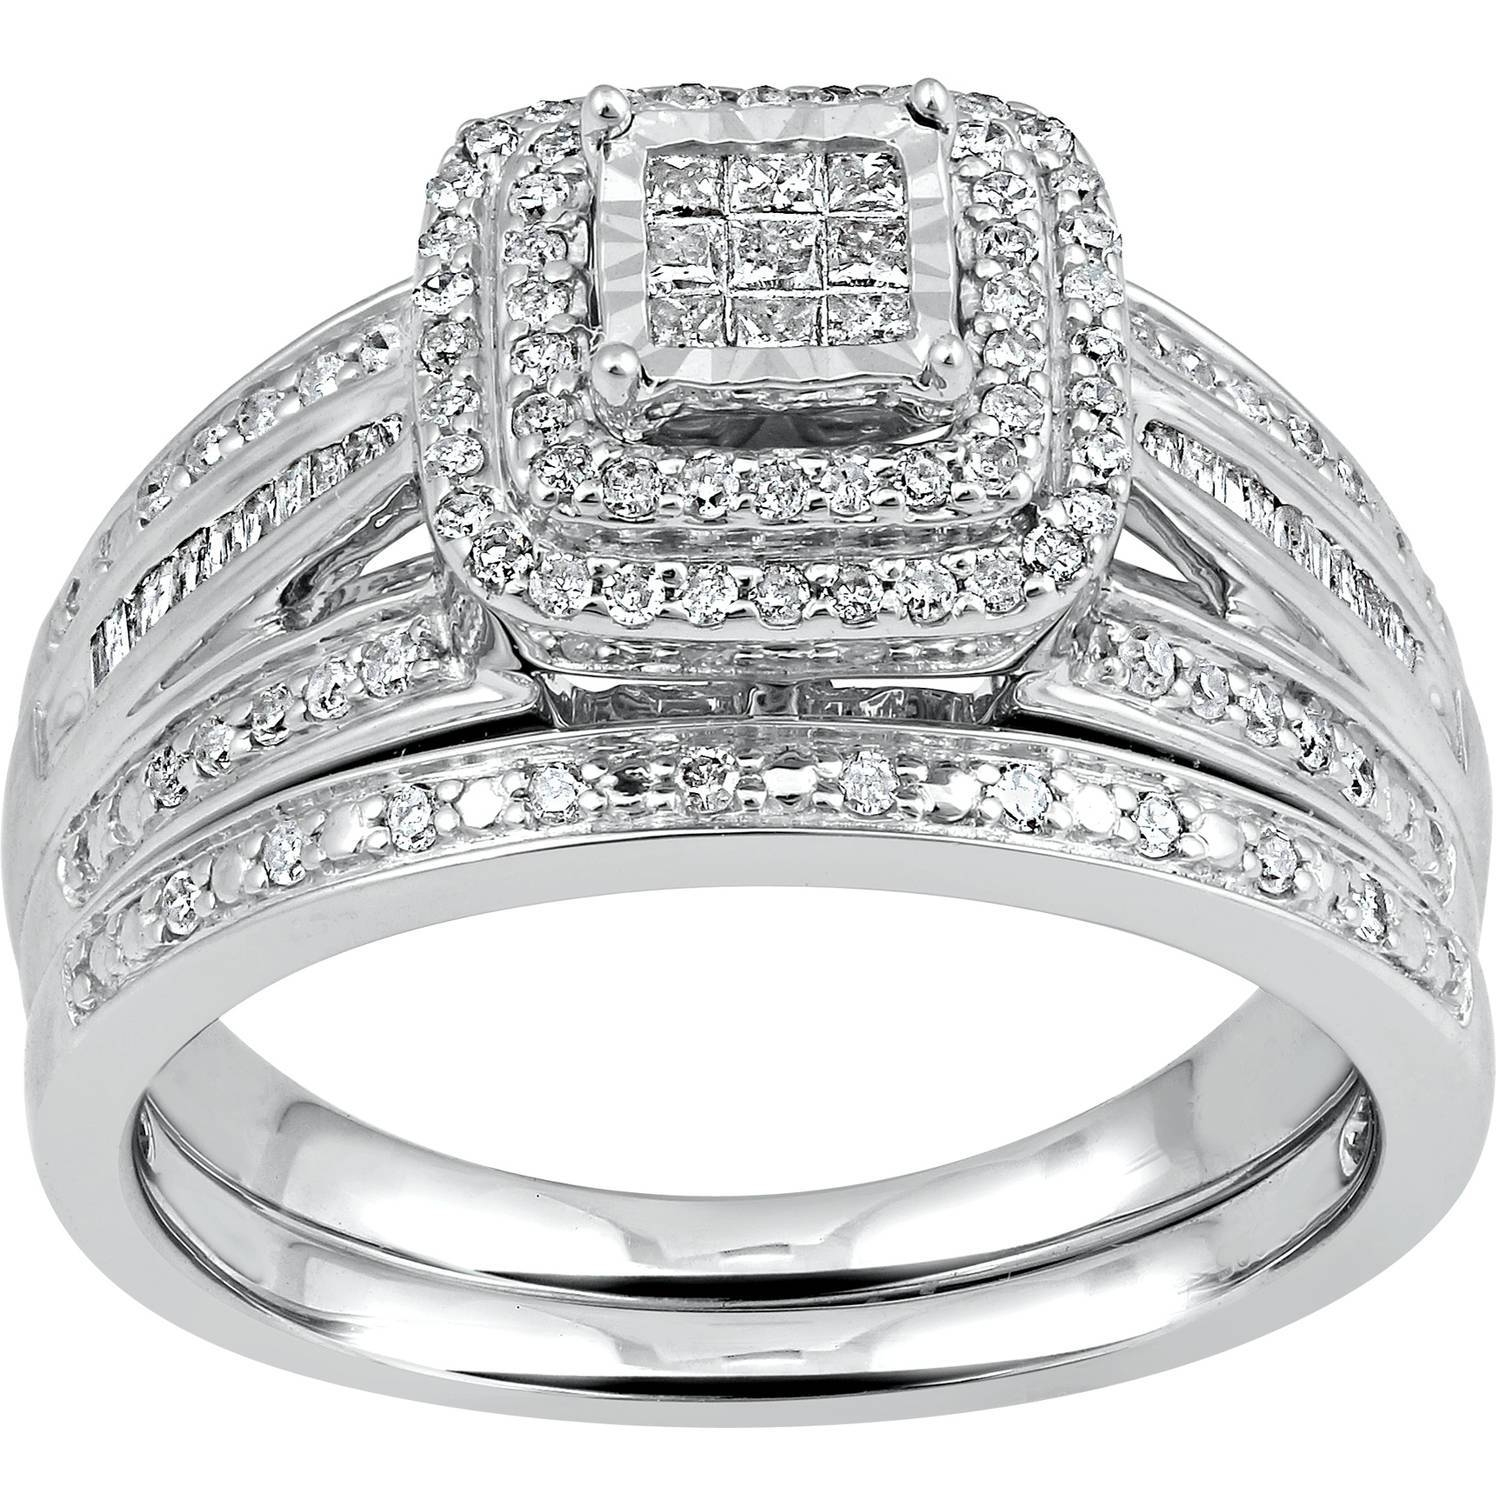 Forever Bride Diamond Accent Sterling Silver Wedding Band With Walmart Women's Wedding Bands (View 4 of 15)